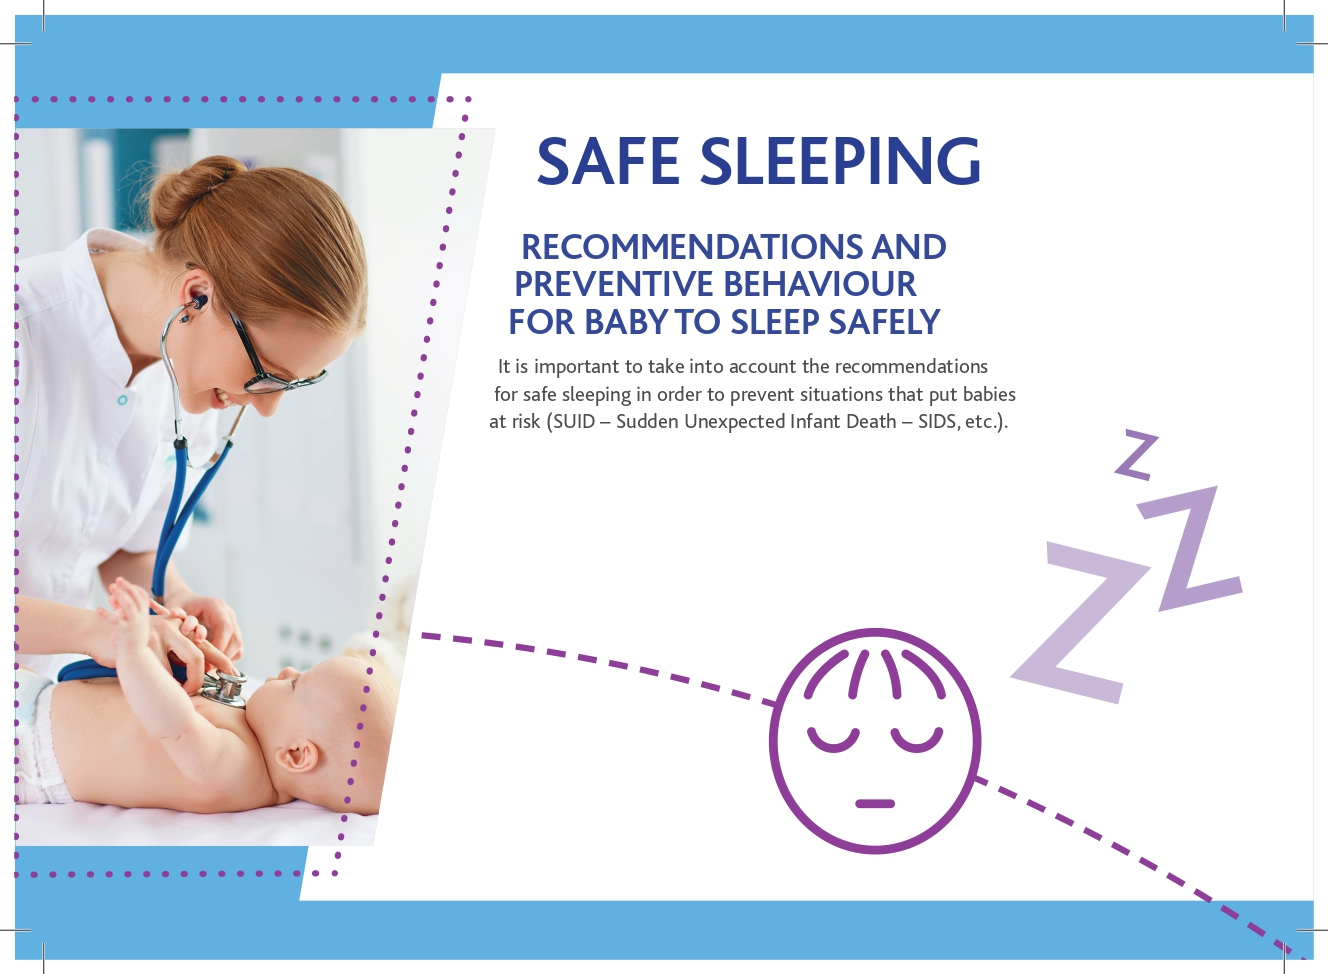 sleep-guide2019-eng-osservatorio-chicco-080319-page-0010.jpg